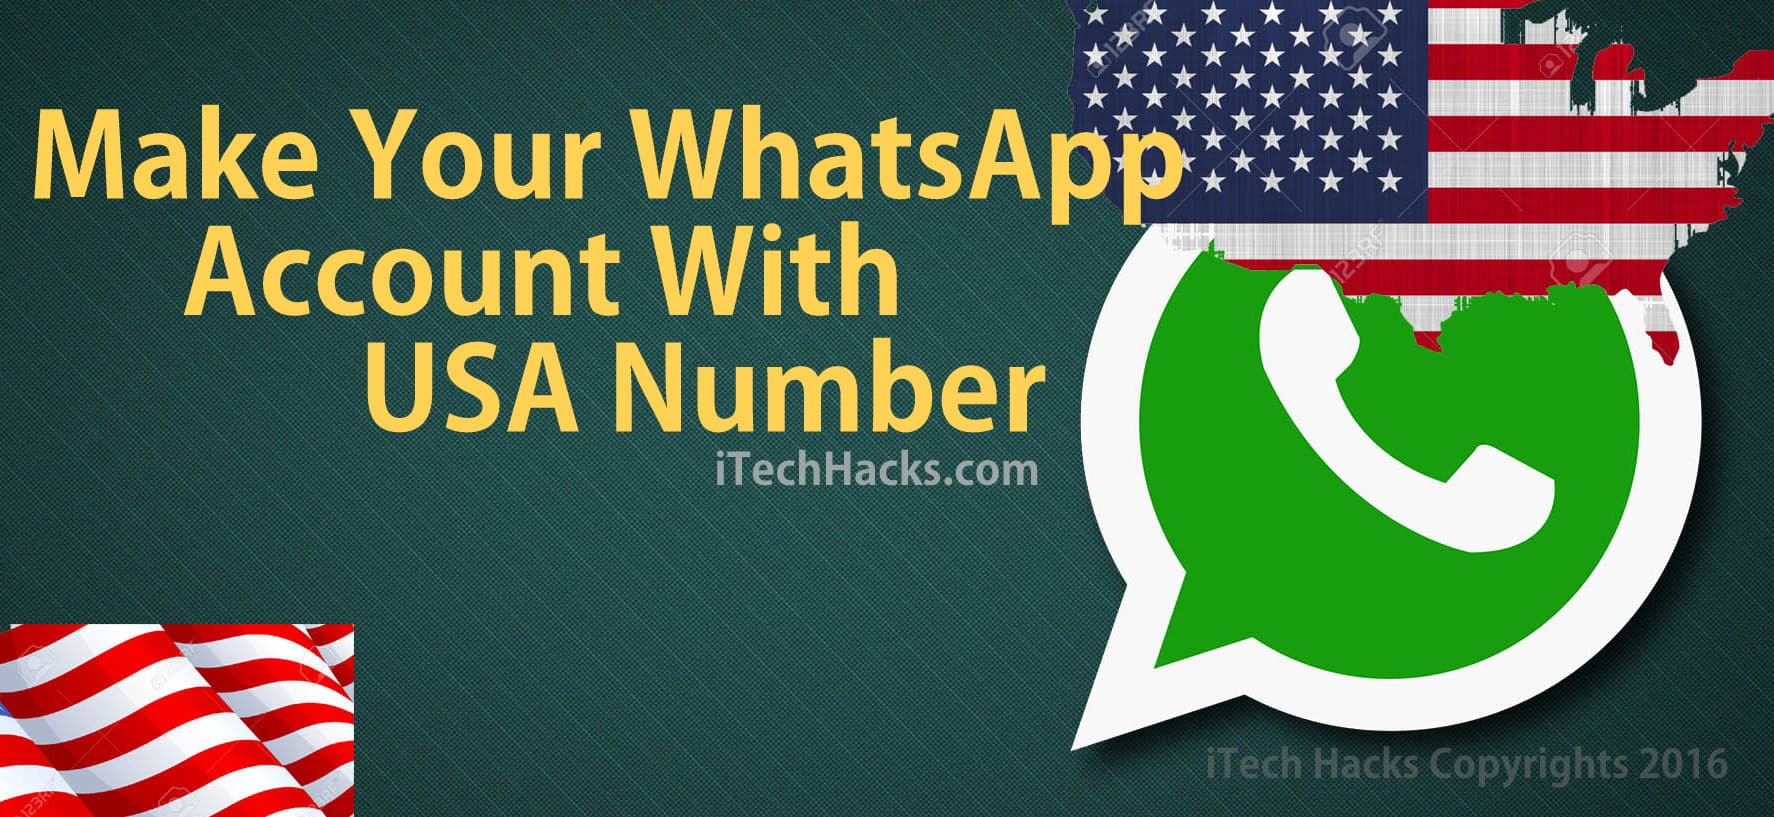 make your whatsapp with USA number free latest